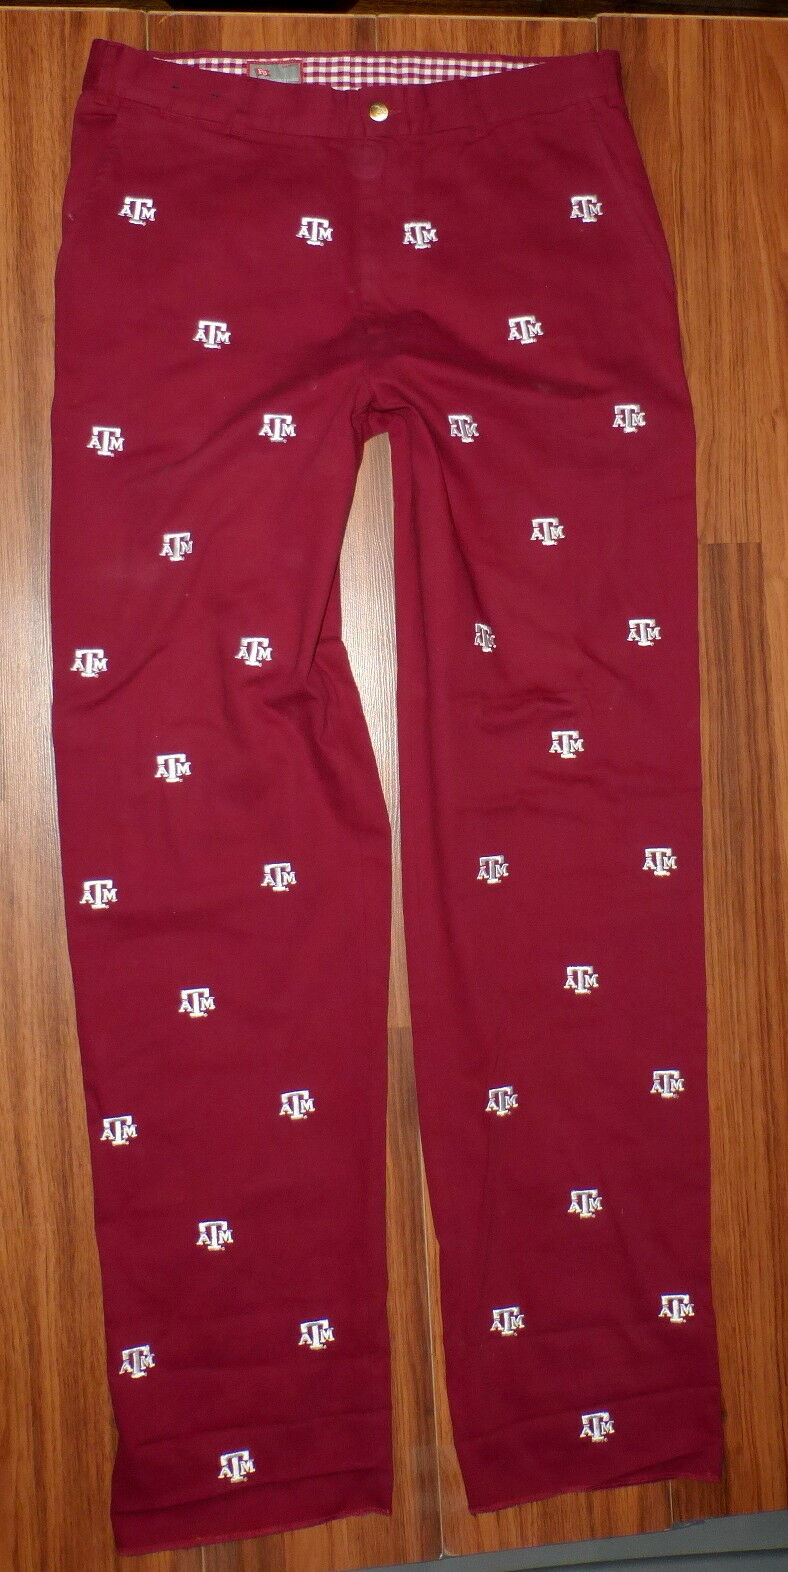 PENNINGTON BAILES TEXAS A&M AGGIES MAROON EMBROIDERED PANTS 36 UNFINISHED HEM